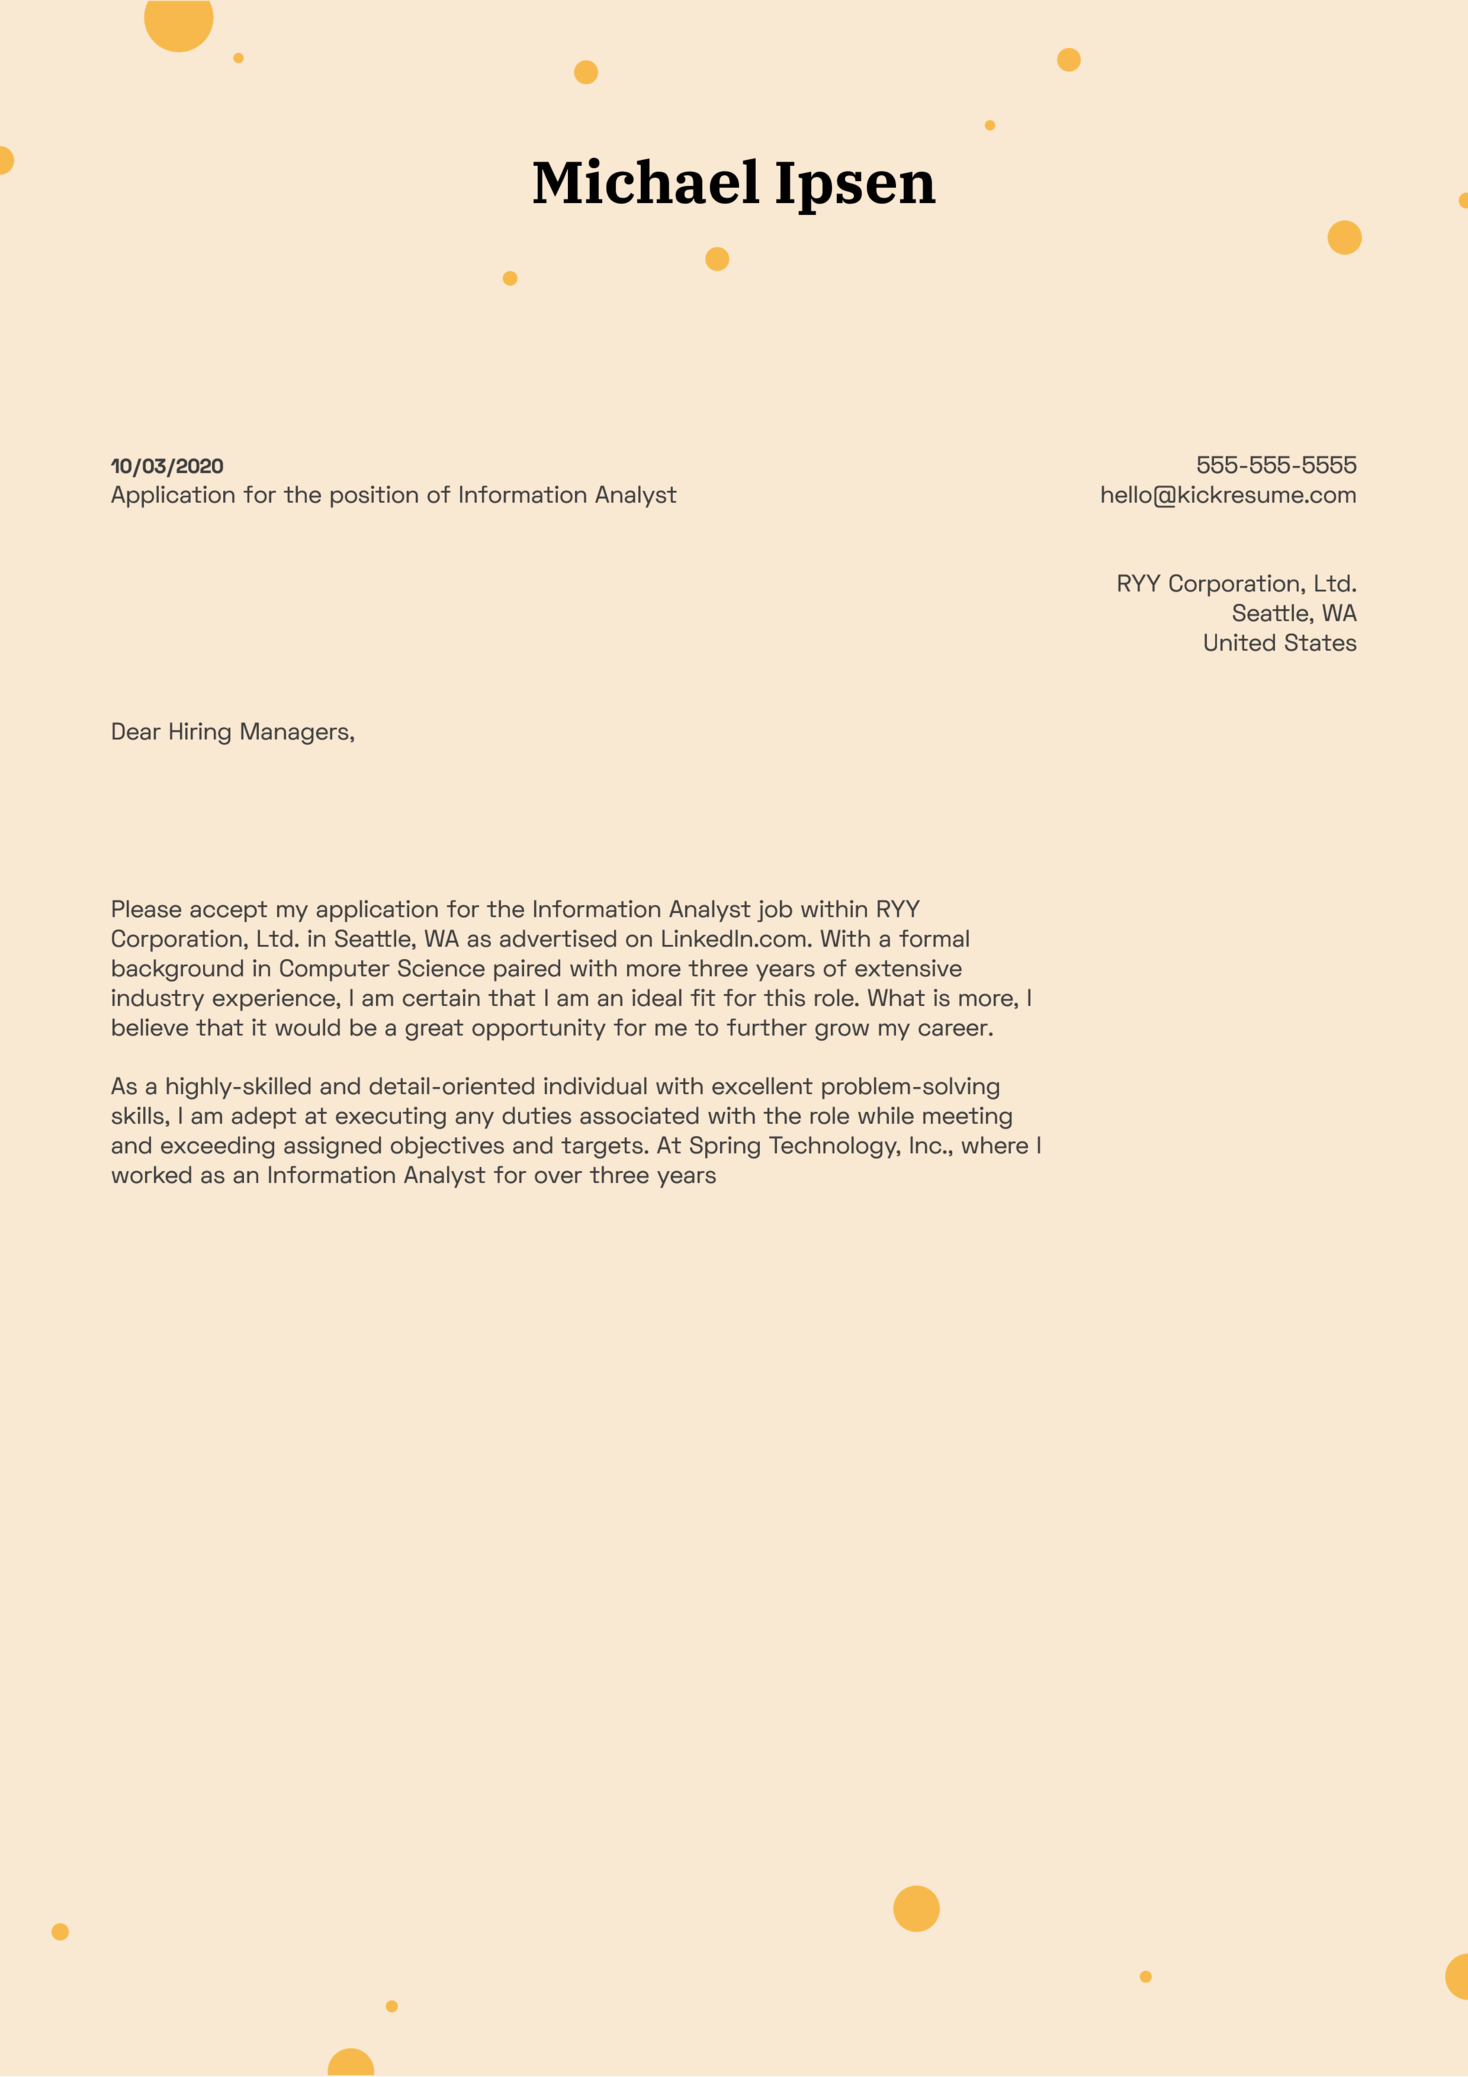 Information Analyst Cover Letter Sample